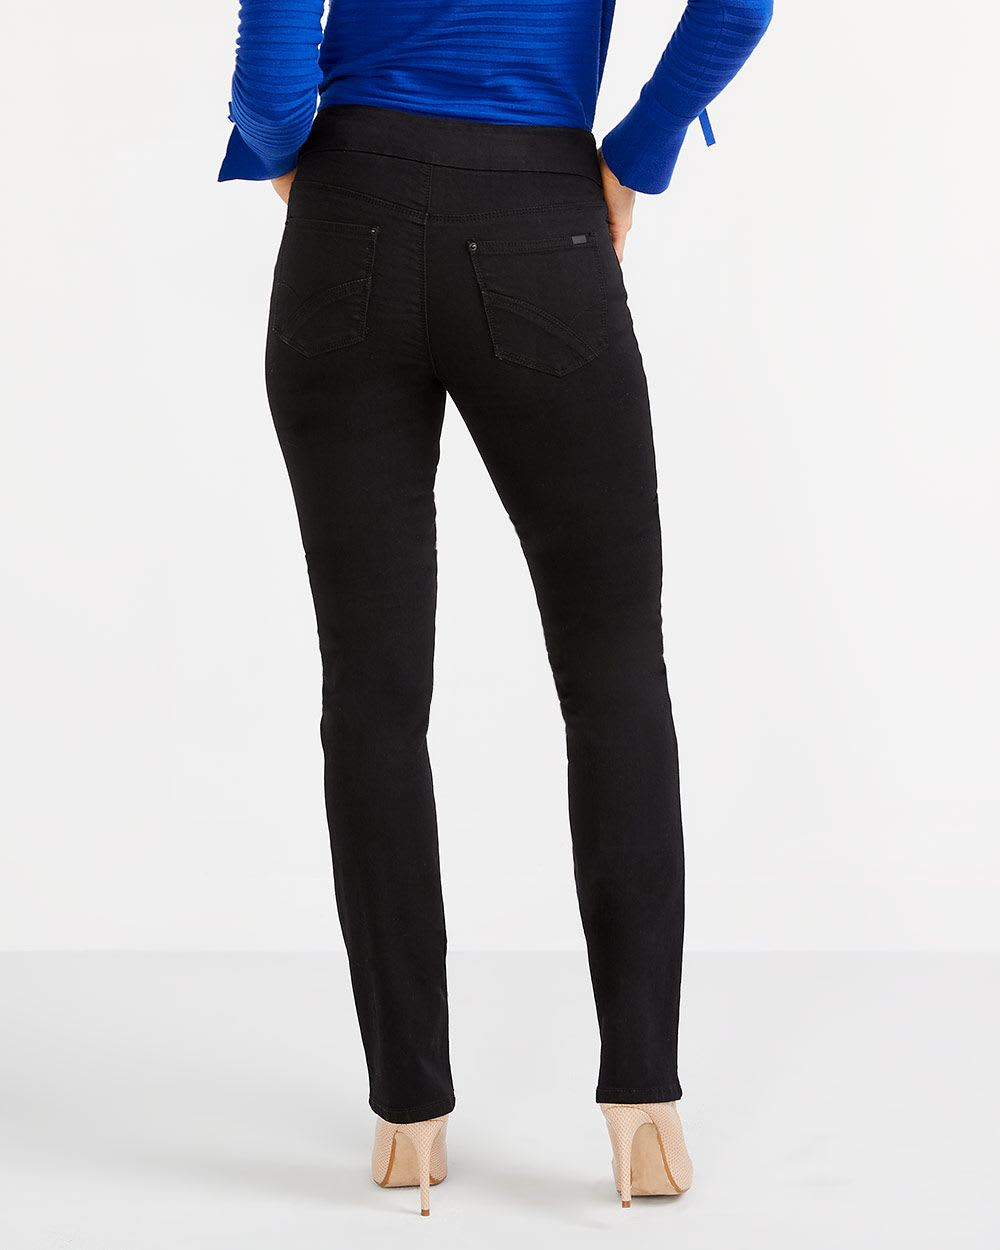 The Tall Original Comfort Black Jeans